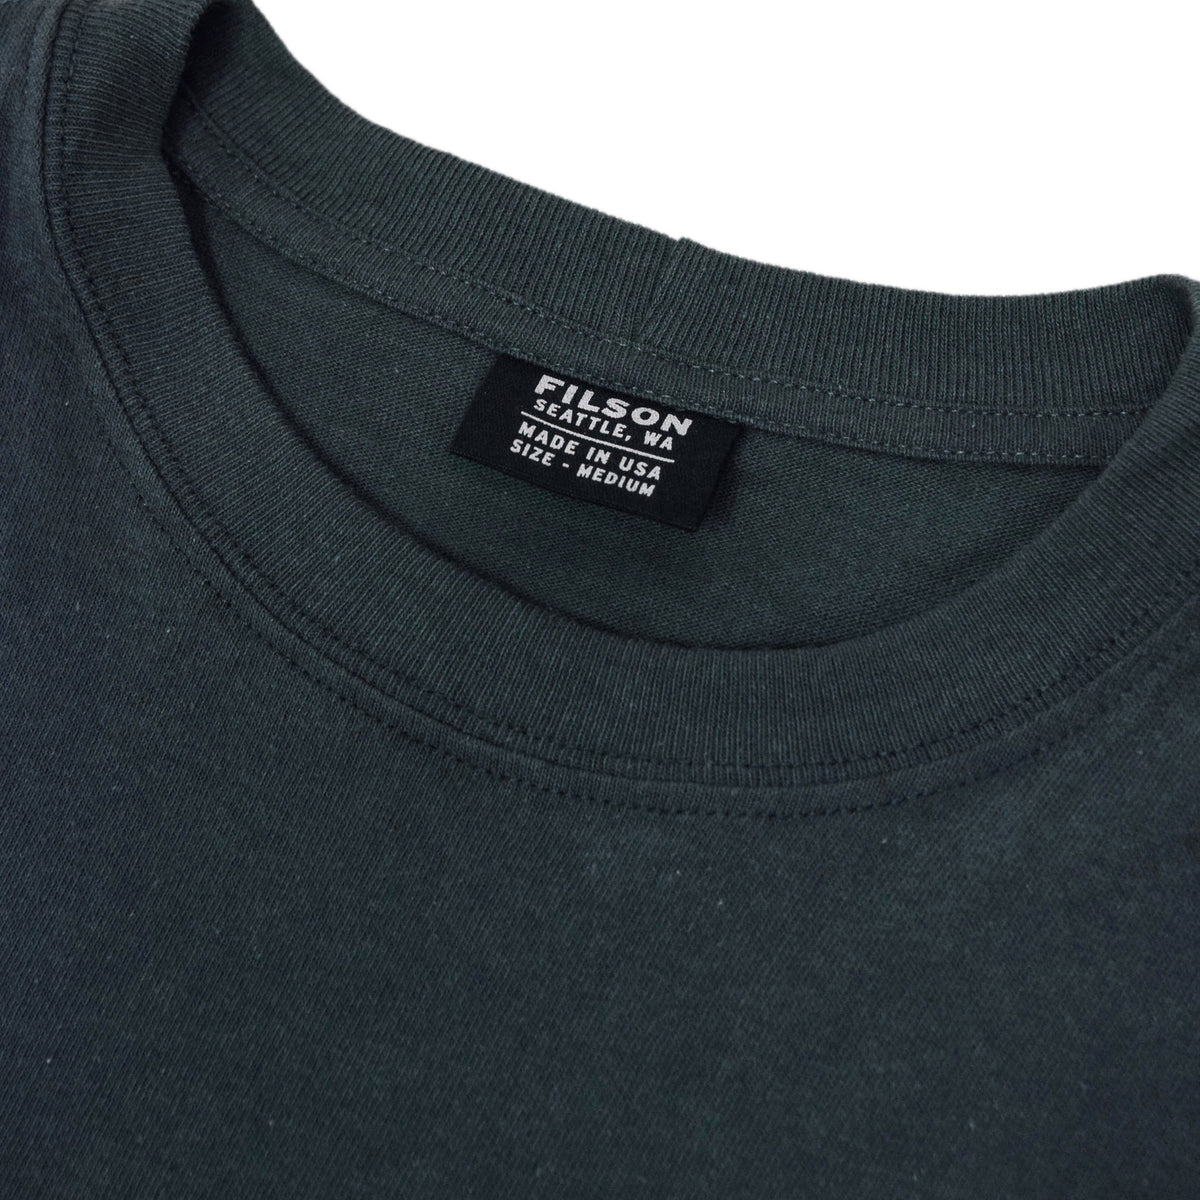 Filson Short Sleeve Outfitter One Pocket T-Shirt Ink Blue collar detail